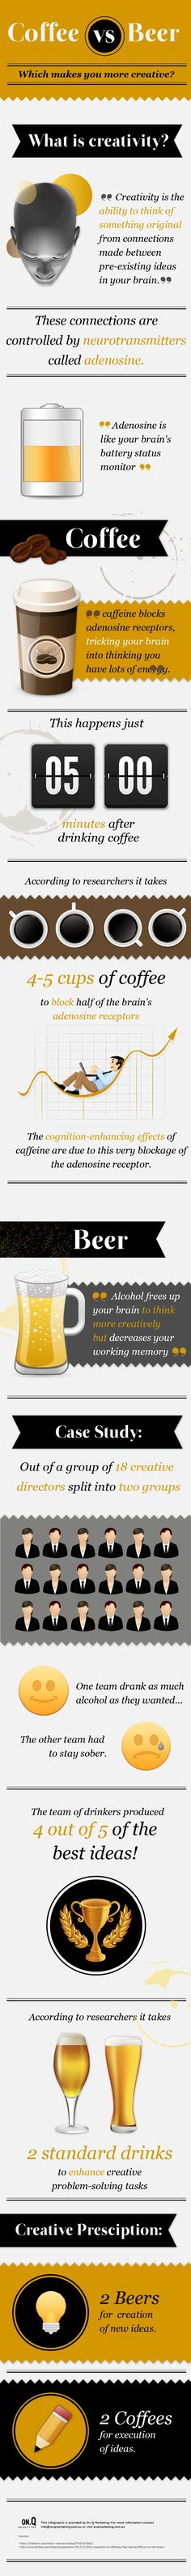 #Food+#Infographics+-+Coffee+vs.+Beer:+Which+Makes+You+More+Creative?+#Infografia